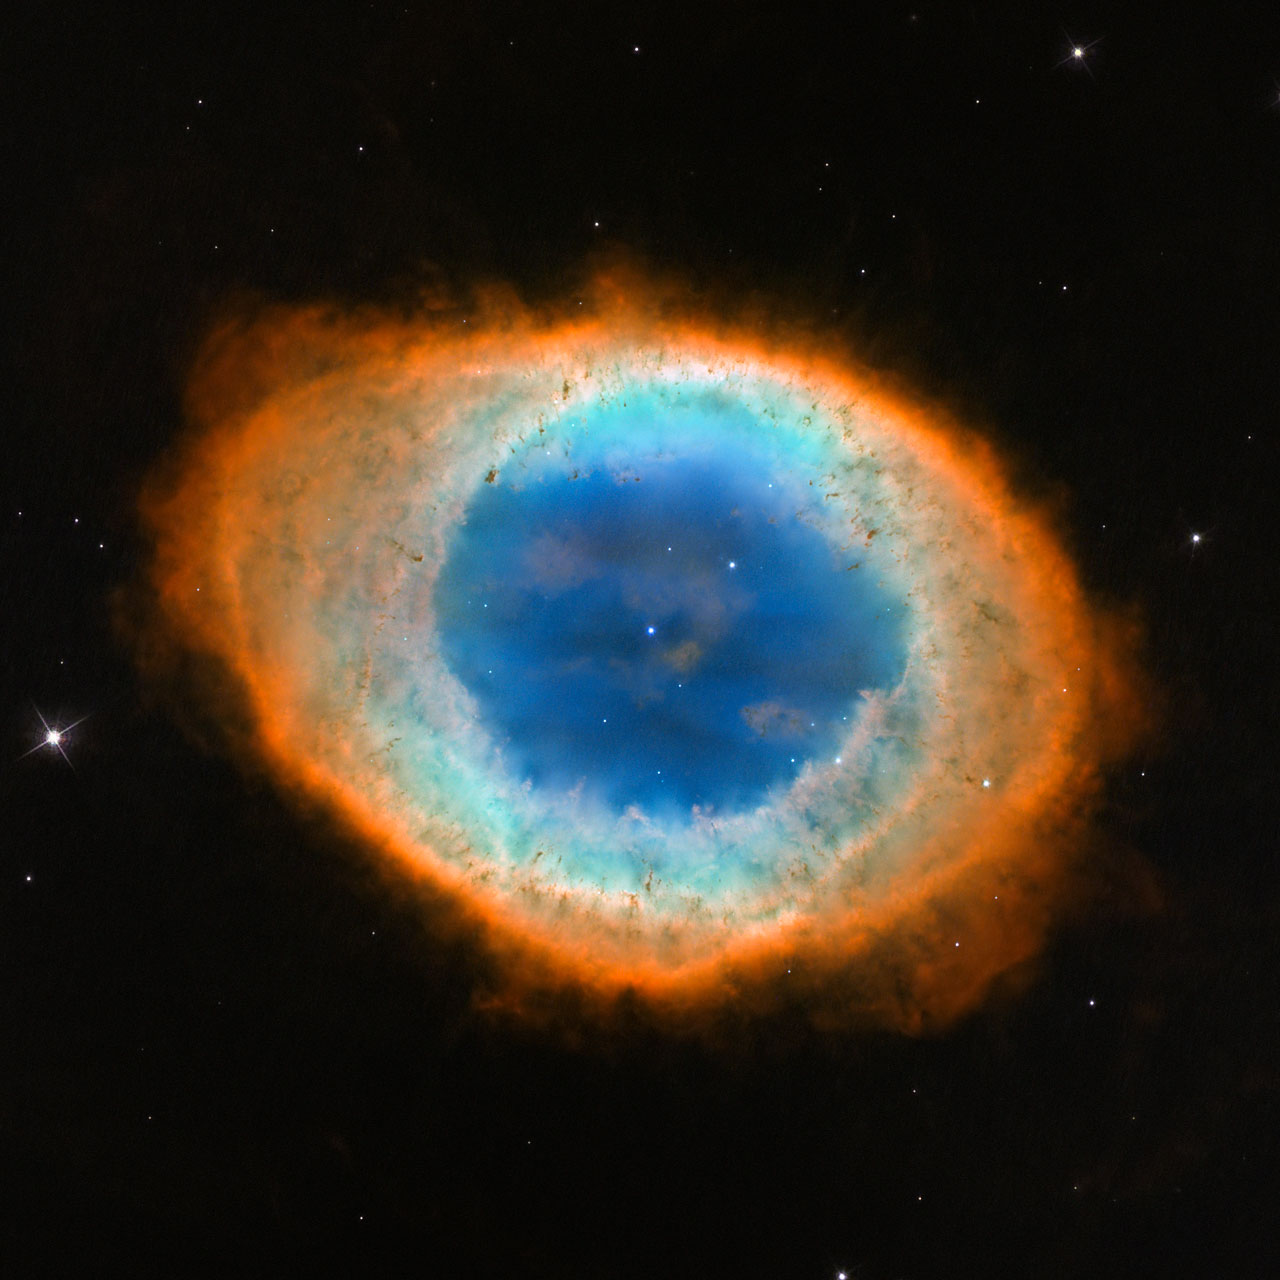 Hubble captures the Ring Nebula